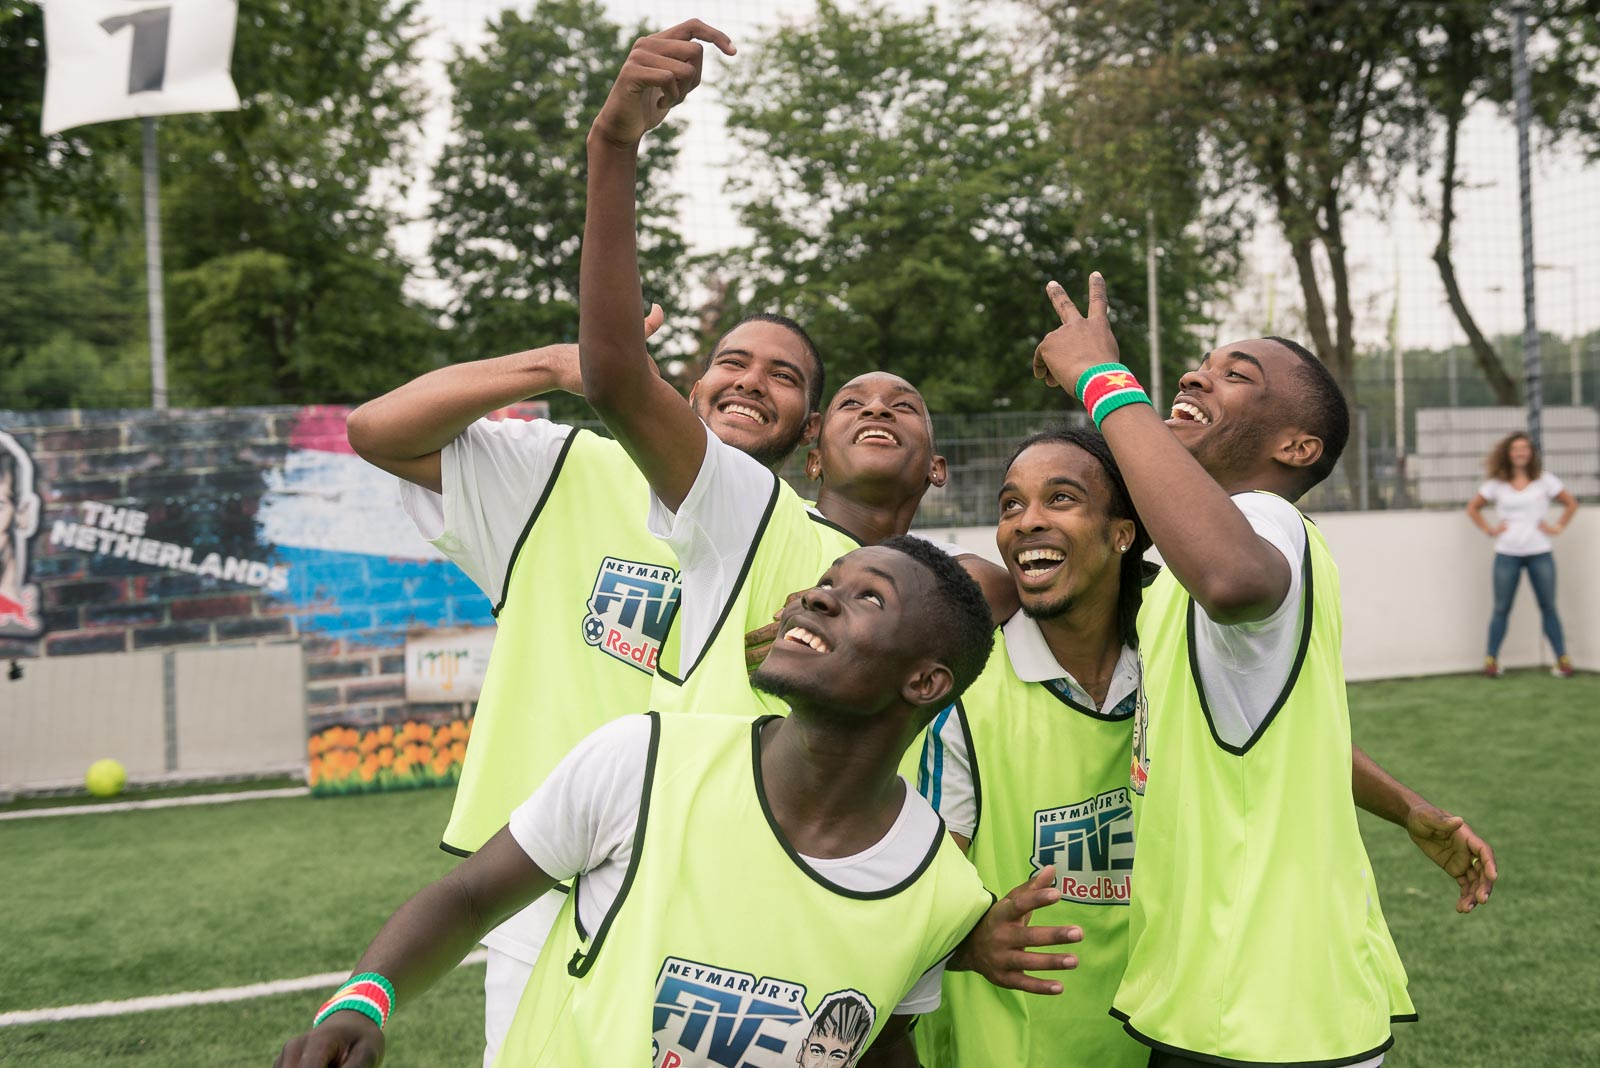 Football players taking a selfie during Red Bull Neymar Jr's Five tournament